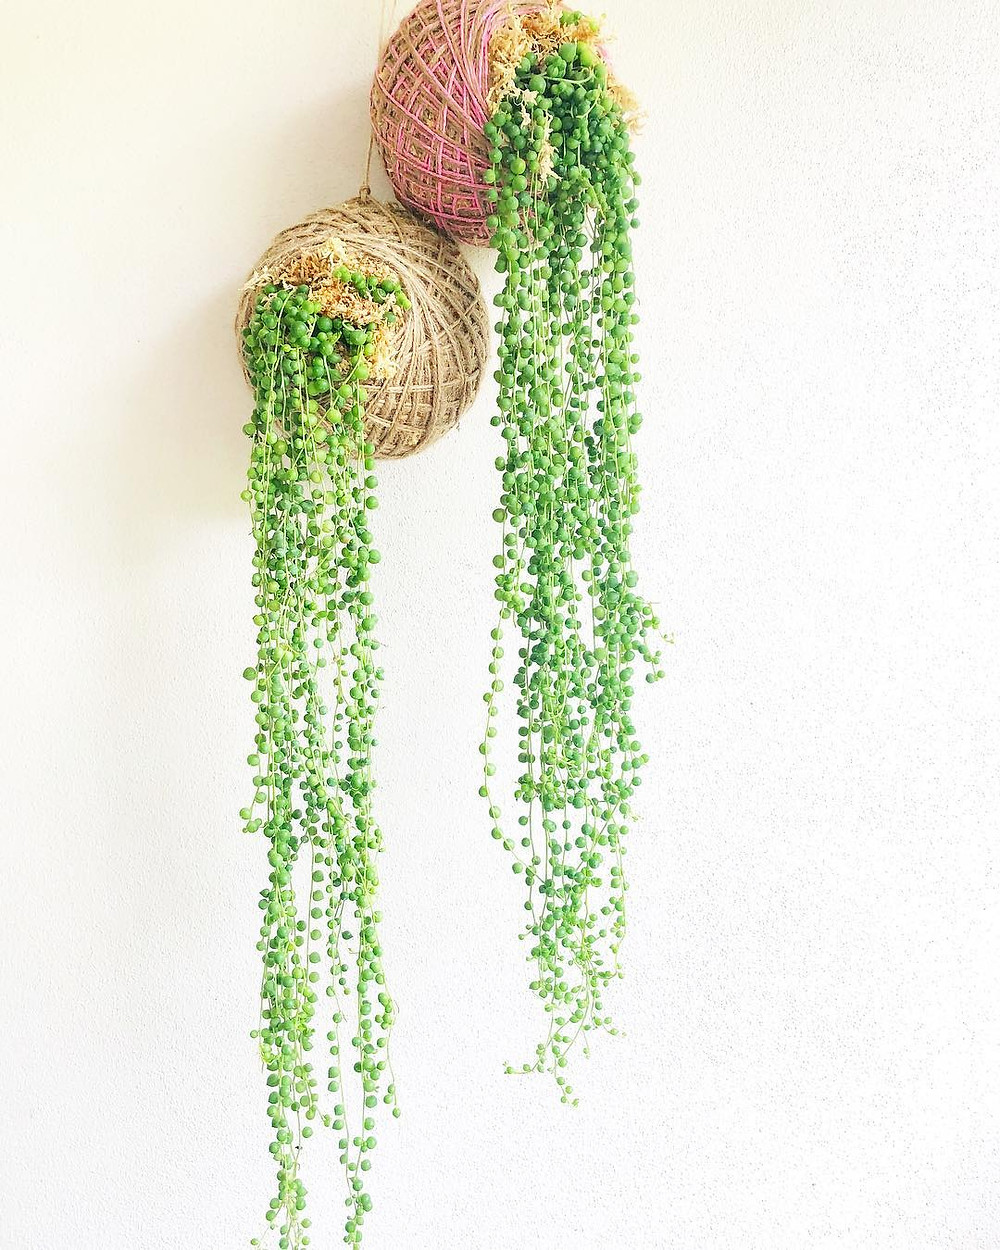 String Of Pearls Senecio Rowleyanus Trailing Plants Hanging Houseplants